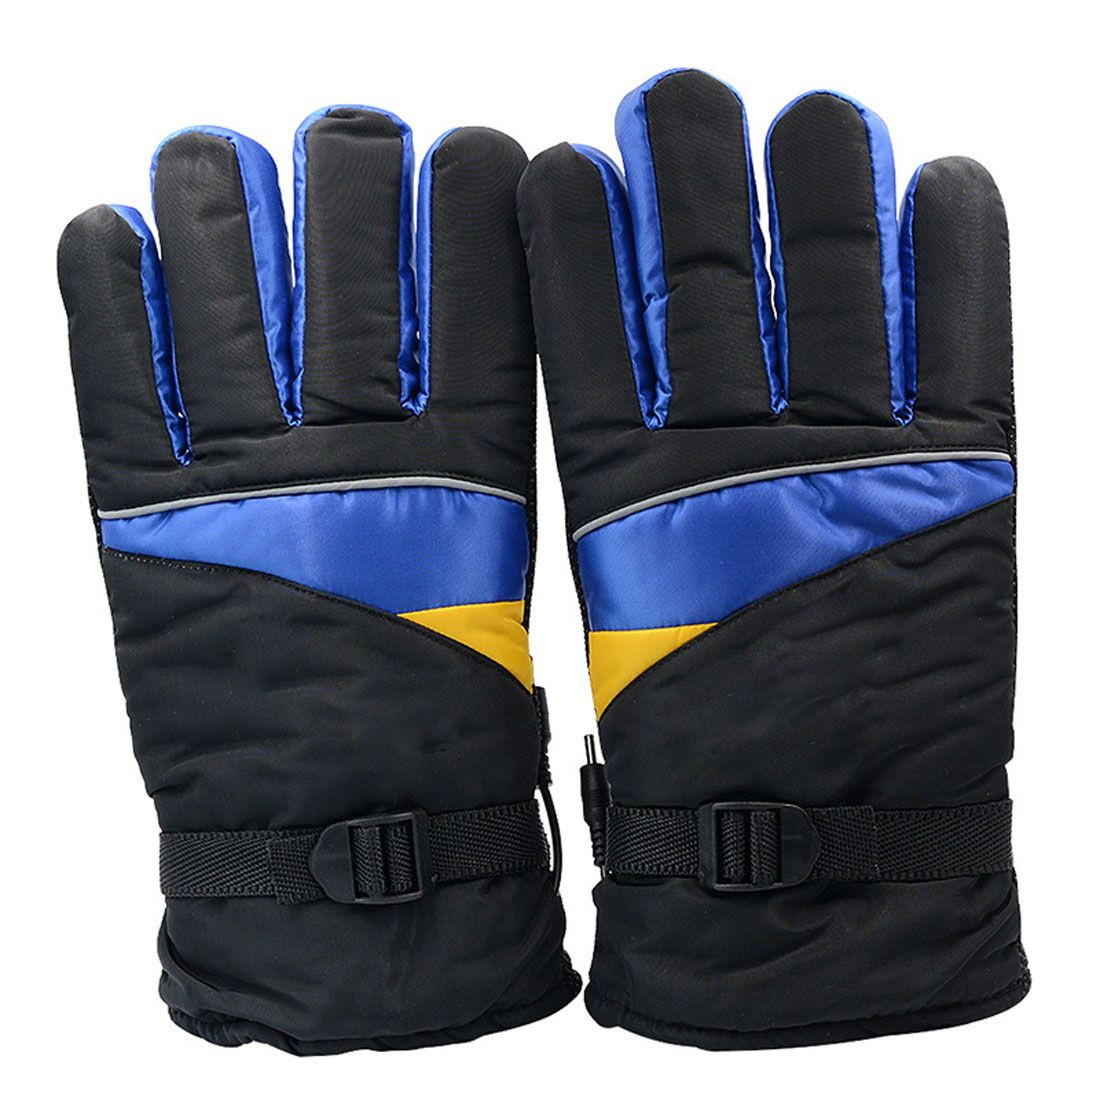 Dongzhen Motorcycle gloves 12V Electric Gloves Charge Heated Gloves Sport Temperature Control Rechargeable Hunting Winter Warme